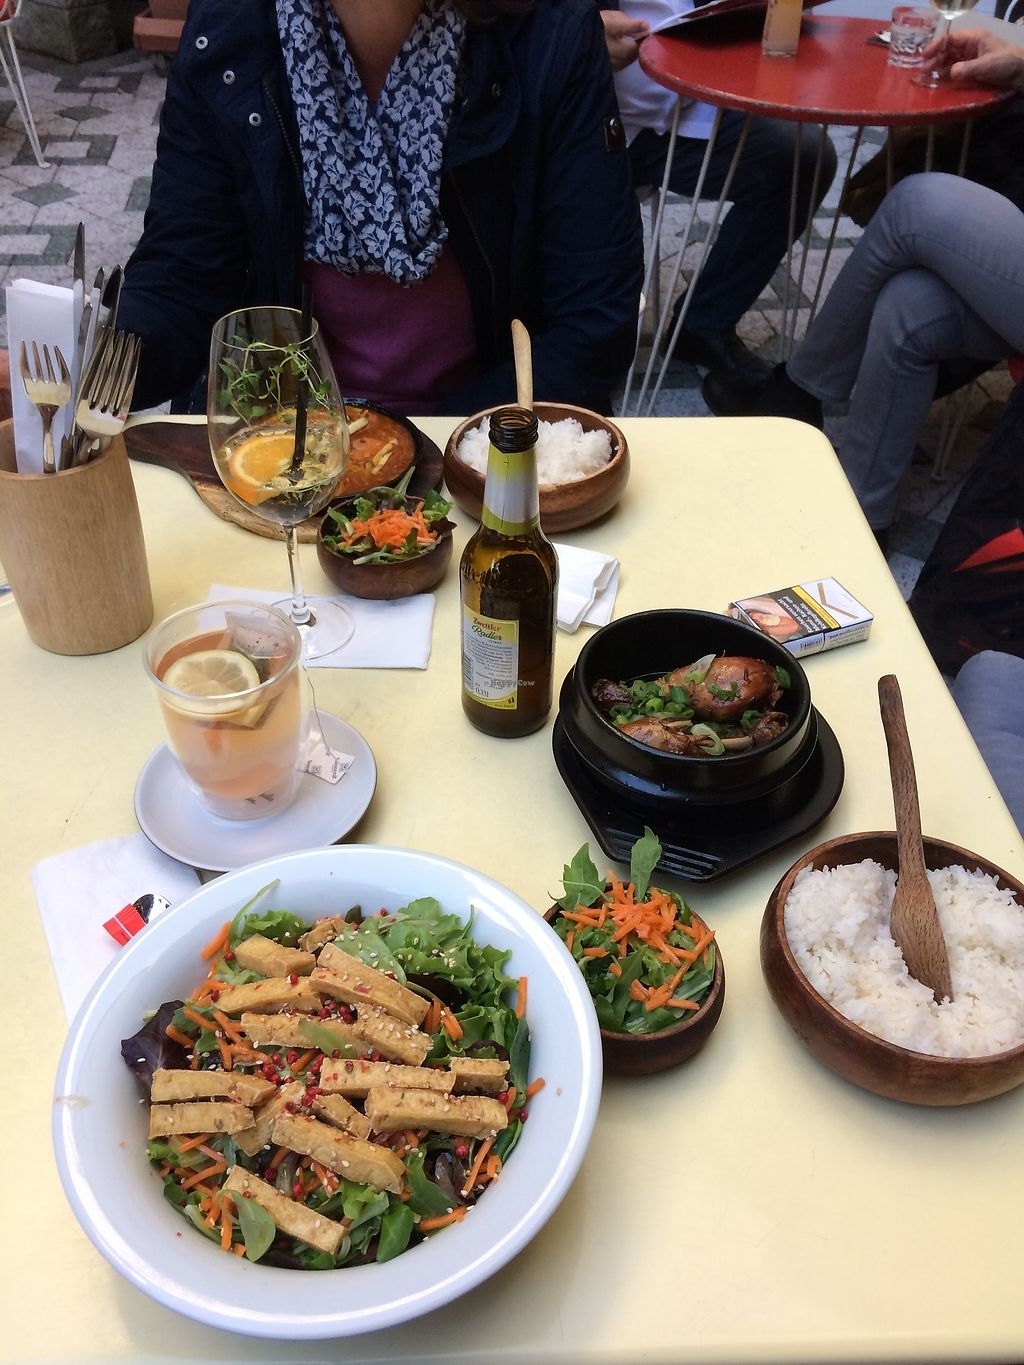 """Photo of Hotel Am Brilliantengrund  by <a href=""""/members/profile/Olenchik"""">Olenchik</a> <br/>Pictured foods: Hipon Adobo Tofu salad <br/> July 27, 2017  - <a href='/contact/abuse/image/62087/285629'>Report</a>"""